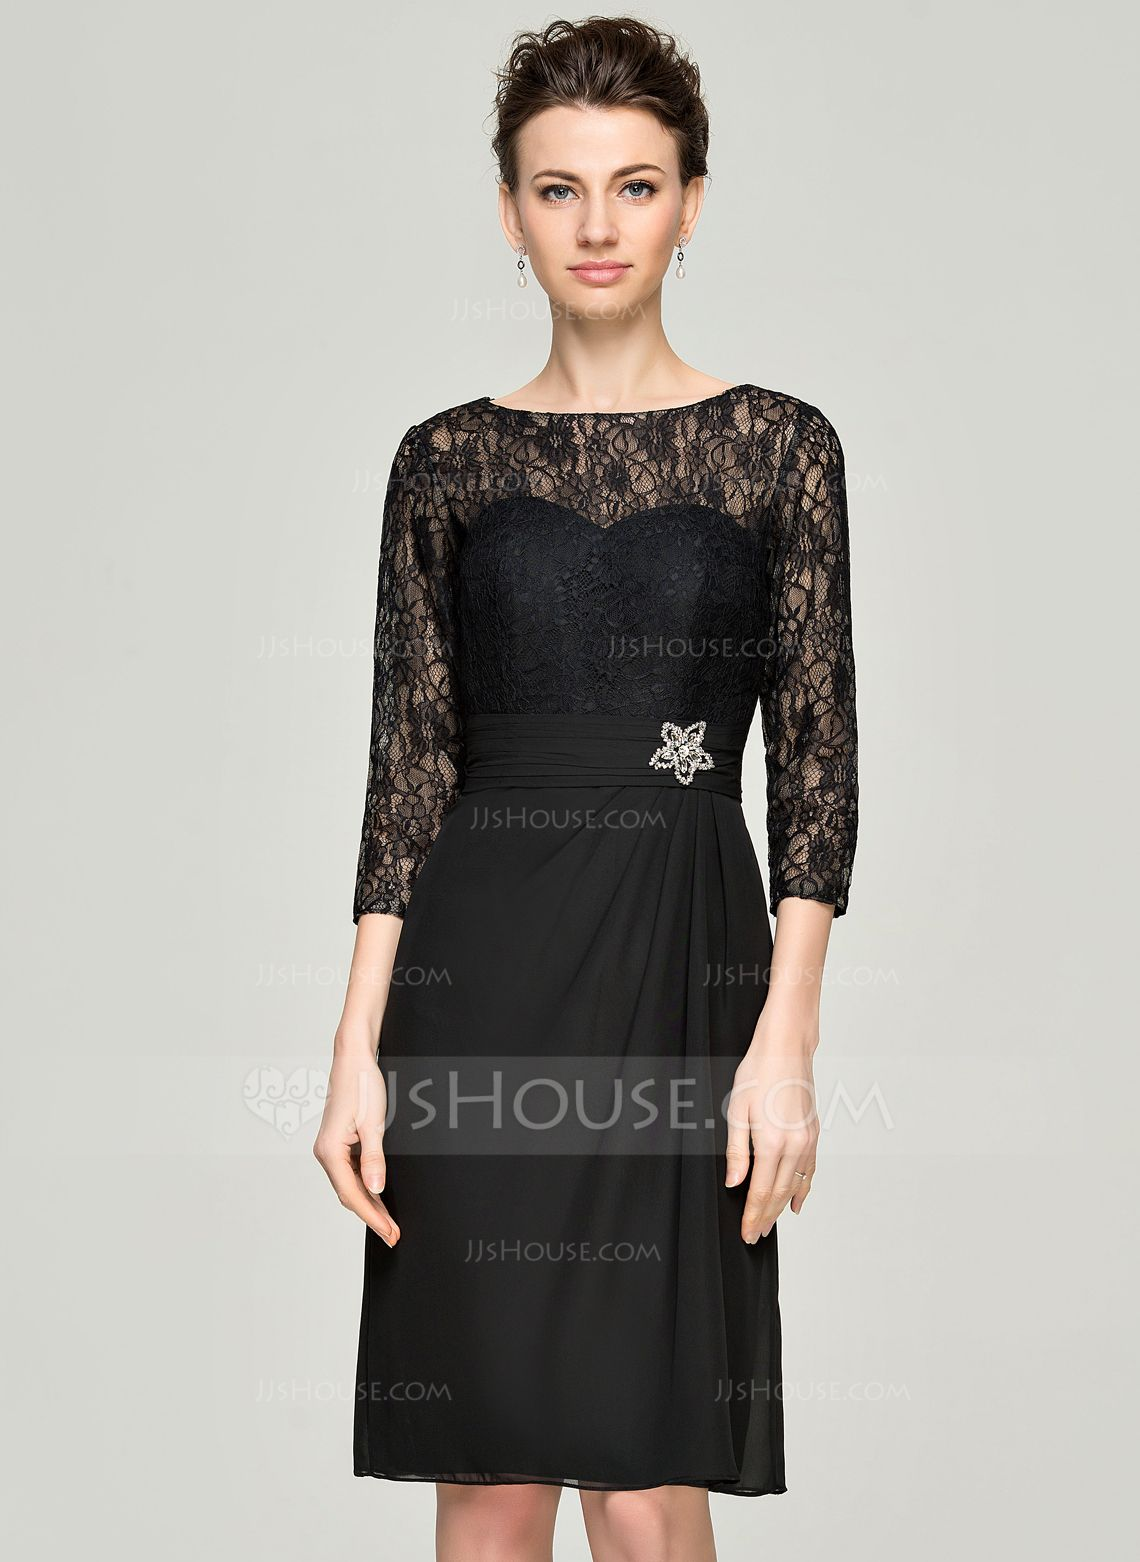 Black lace dress for summer wedding  ALinePrincess Scoop Neck KneeLength Chiffon Lace Mother of the